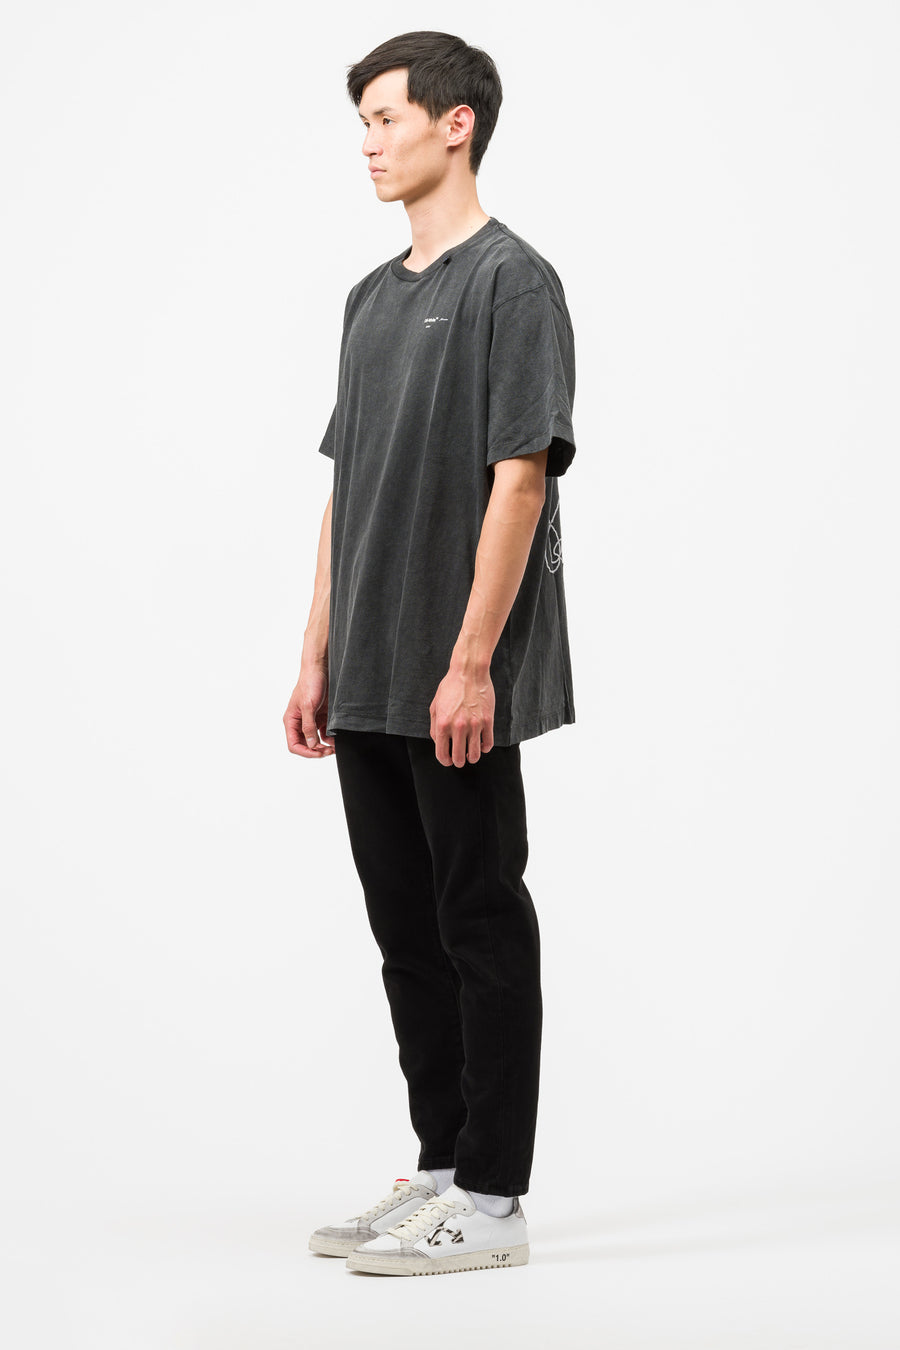 Off-White Abstract Arrows S/S Over Tee in Black/White - Notre